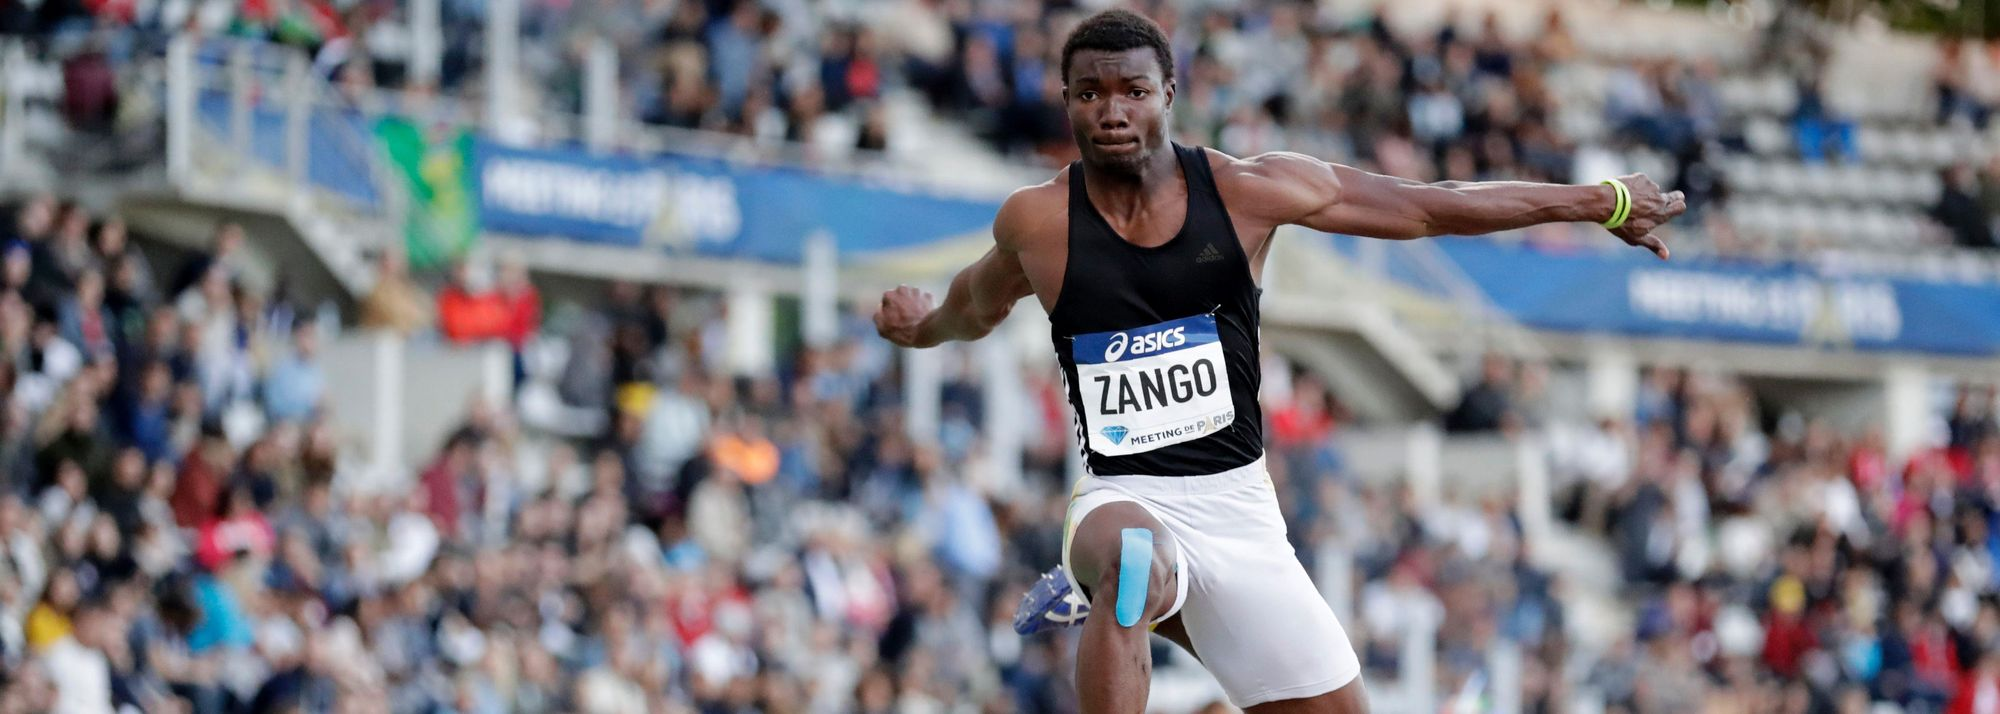 Jacob Kiplimo will also be among the athletes competing in front of a 1500-strong crowd when the Golden Spike takes place in Ostrava on 19 May.